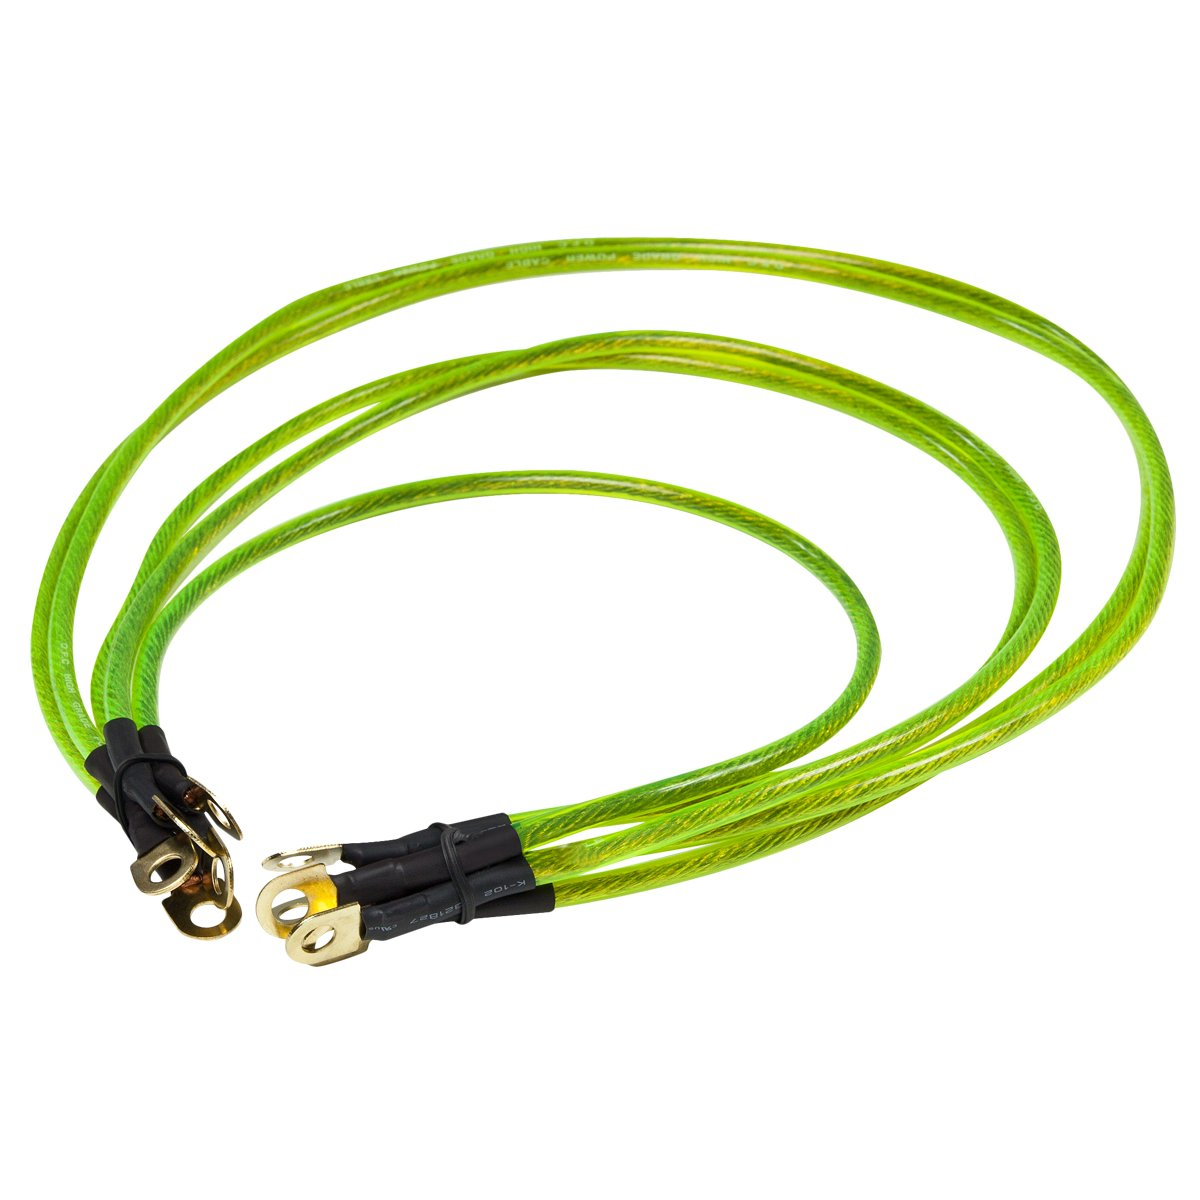 Universal Car Copper Battery To Ground Grounding Cables (Shine Yellow) Auto Dynasty